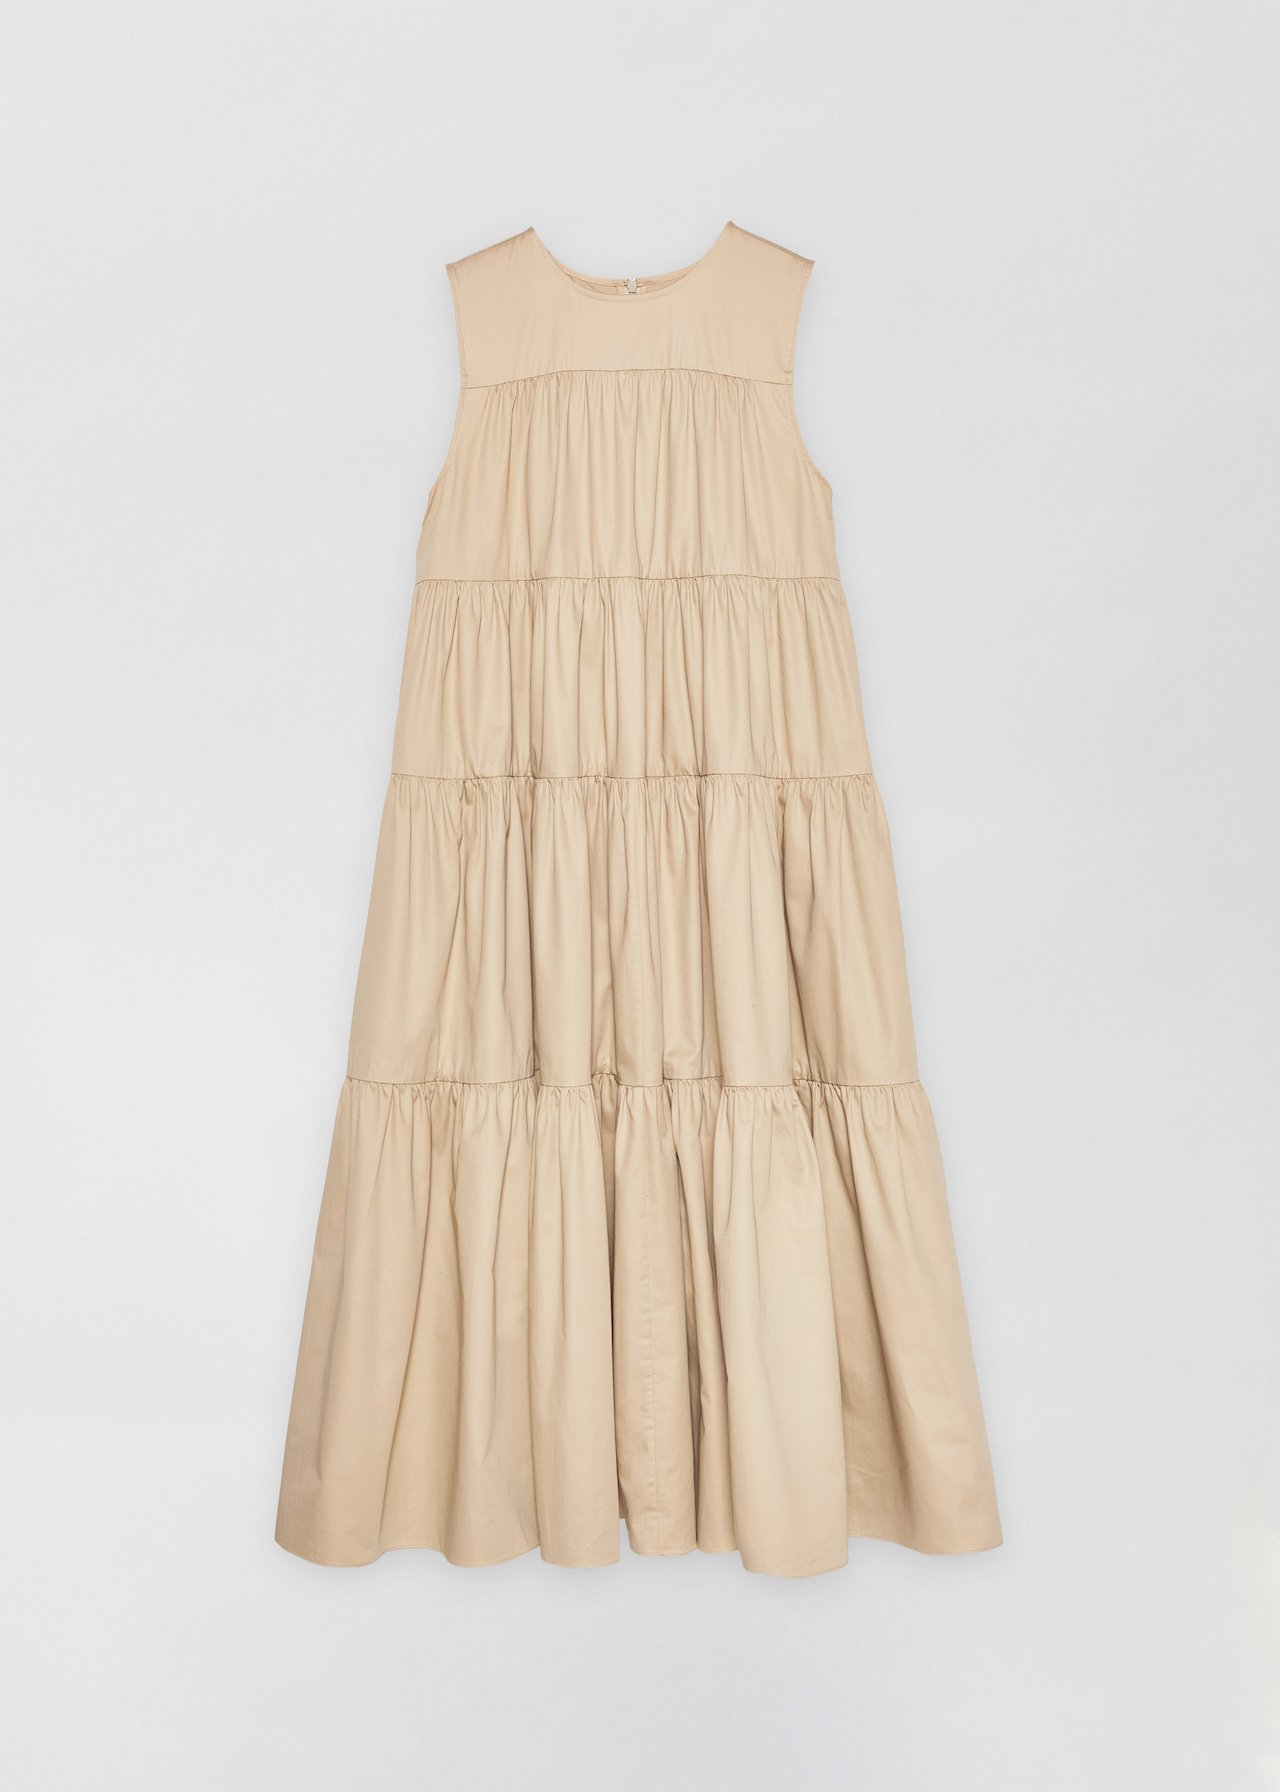 Sleeveless Tiered Dress - White in Taupe by Co Collections